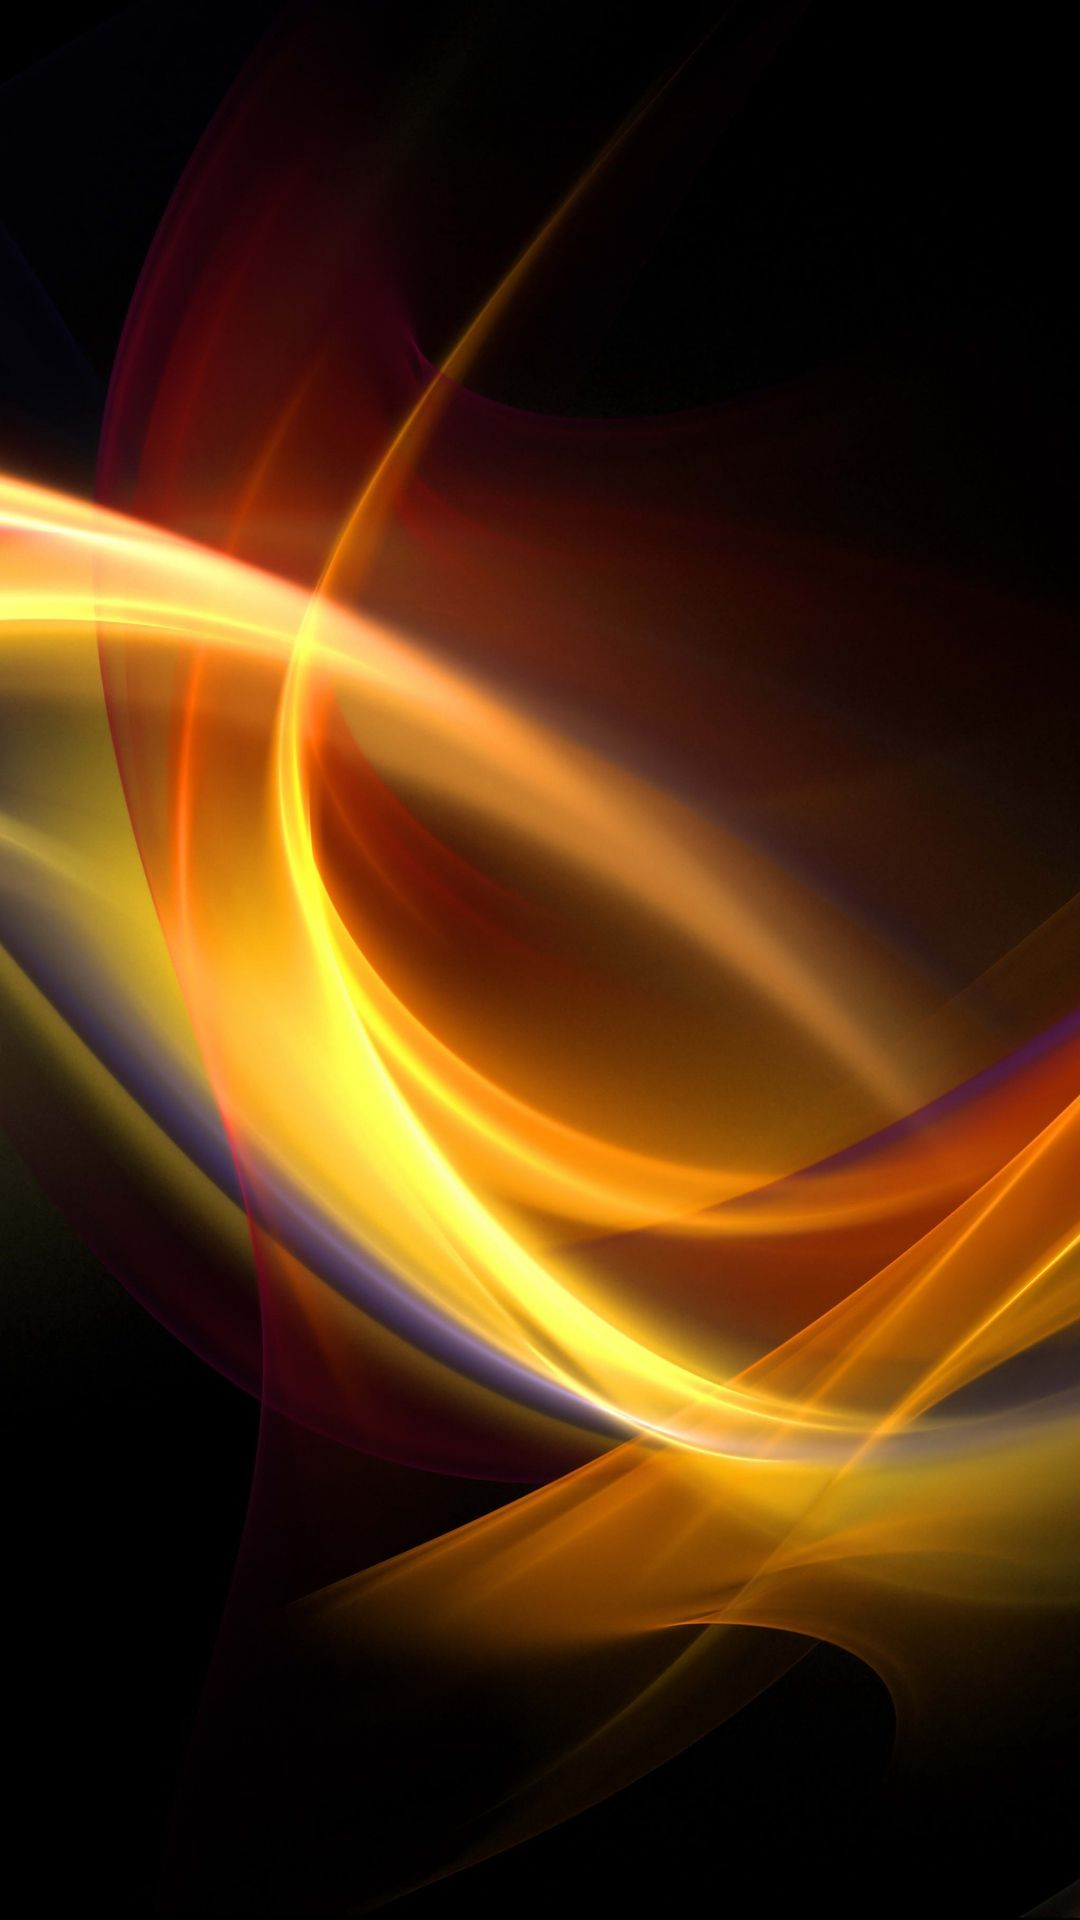 Wallpaper Of Abstract Yellow Blue Android Hd Pics Iphone Abstract Wallpaper Abstract Orange Wallpaper